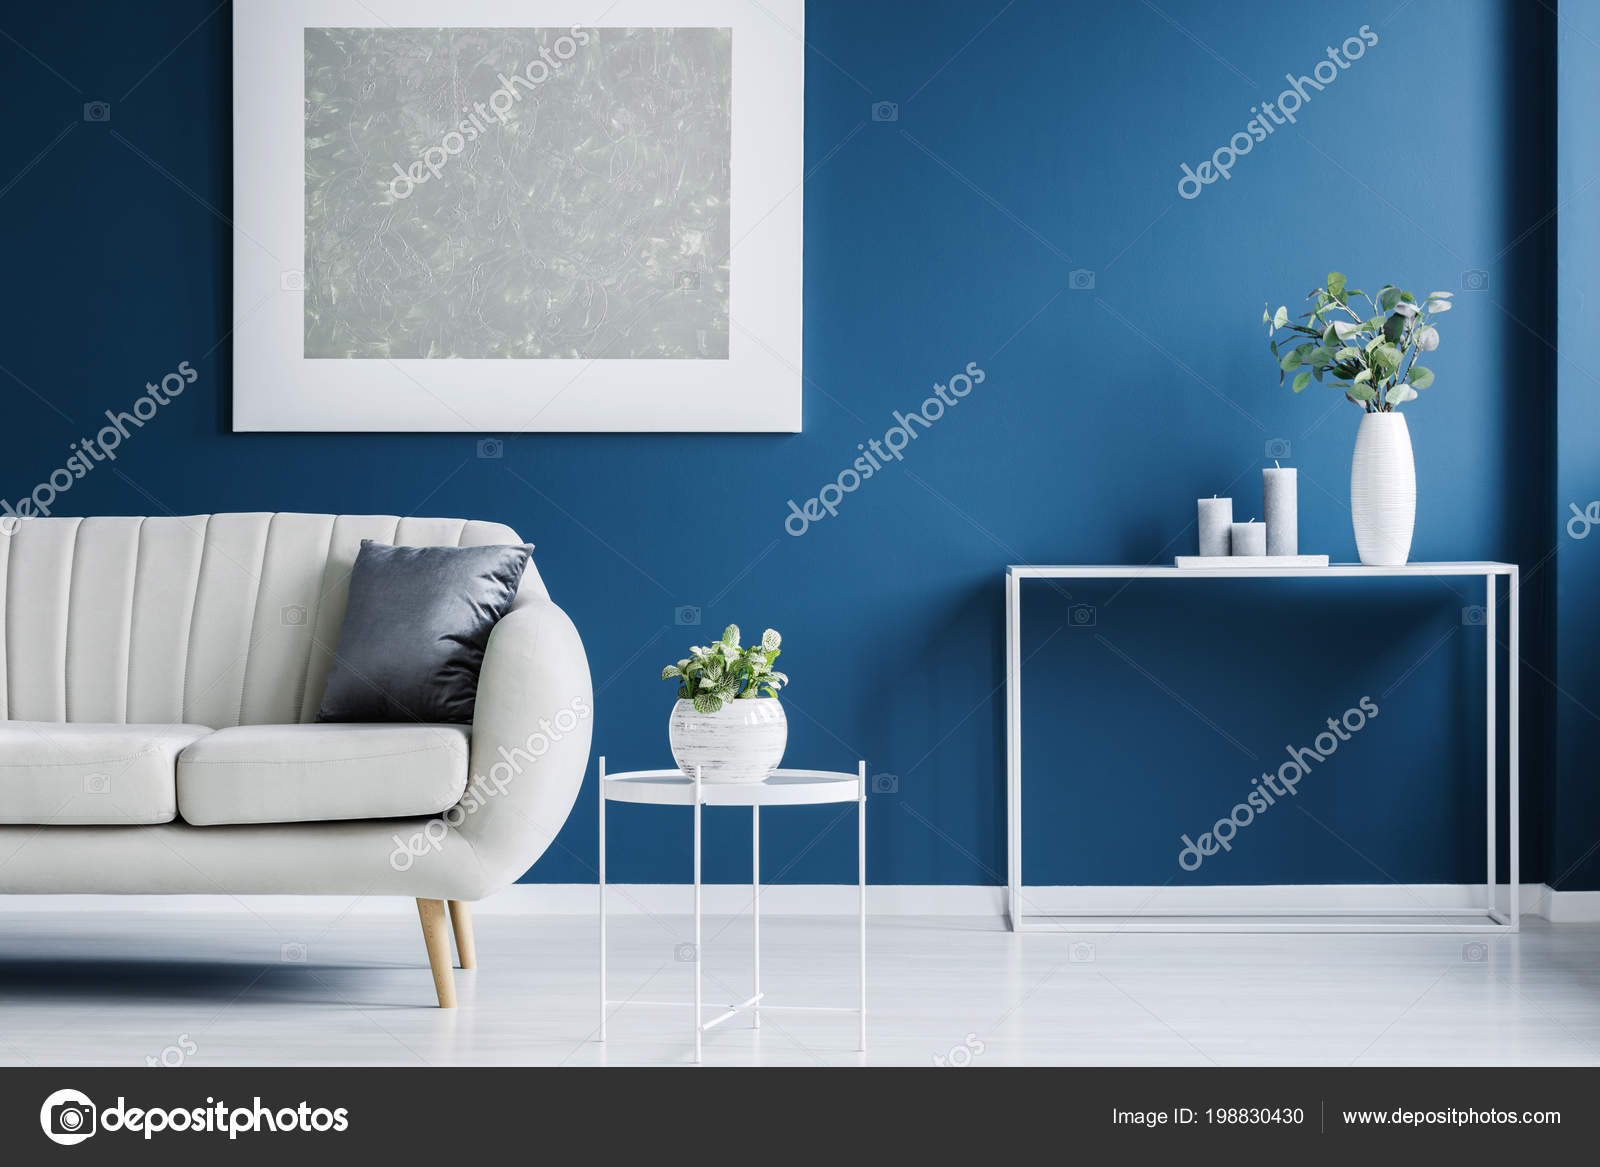 Fantastic Metal Console Table Plant Vase Candles Standing Blue Wall Dailytribune Chair Design For Home Dailytribuneorg